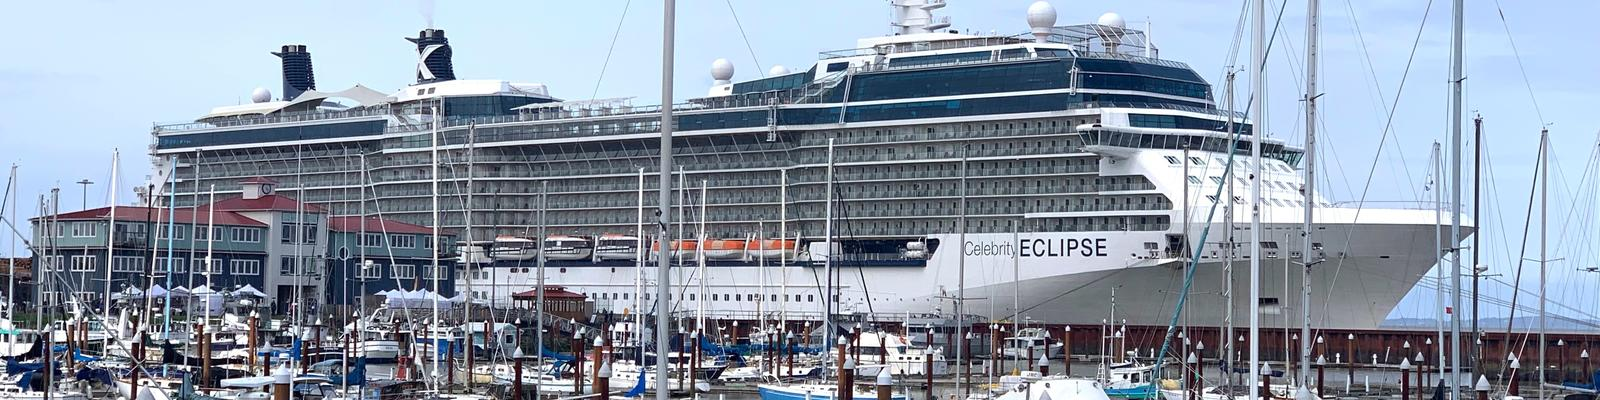 Celebrity Eclipse ship docked in Astoria, Oregon (Photo: Louise Goldsbury)